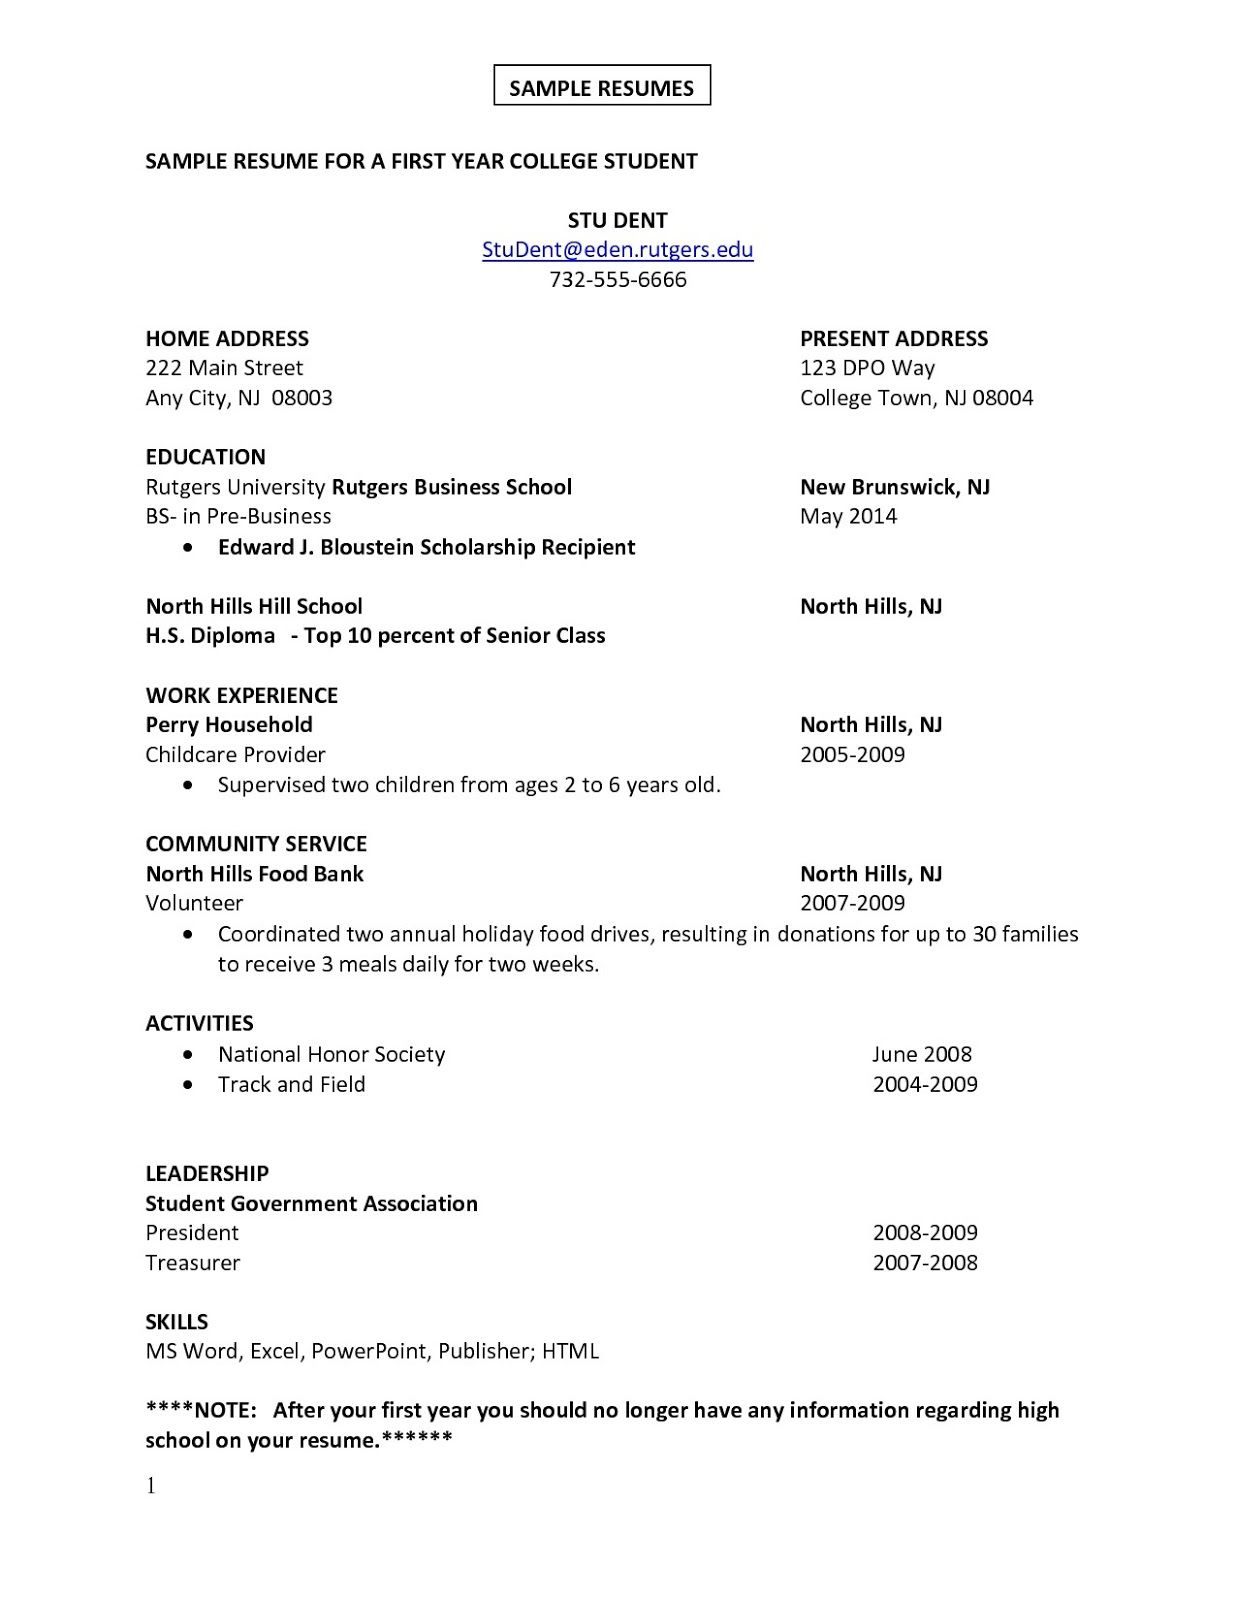 Resume For Highschool Students First Job Sample Resume  Sample Resumes  Sample Resumes